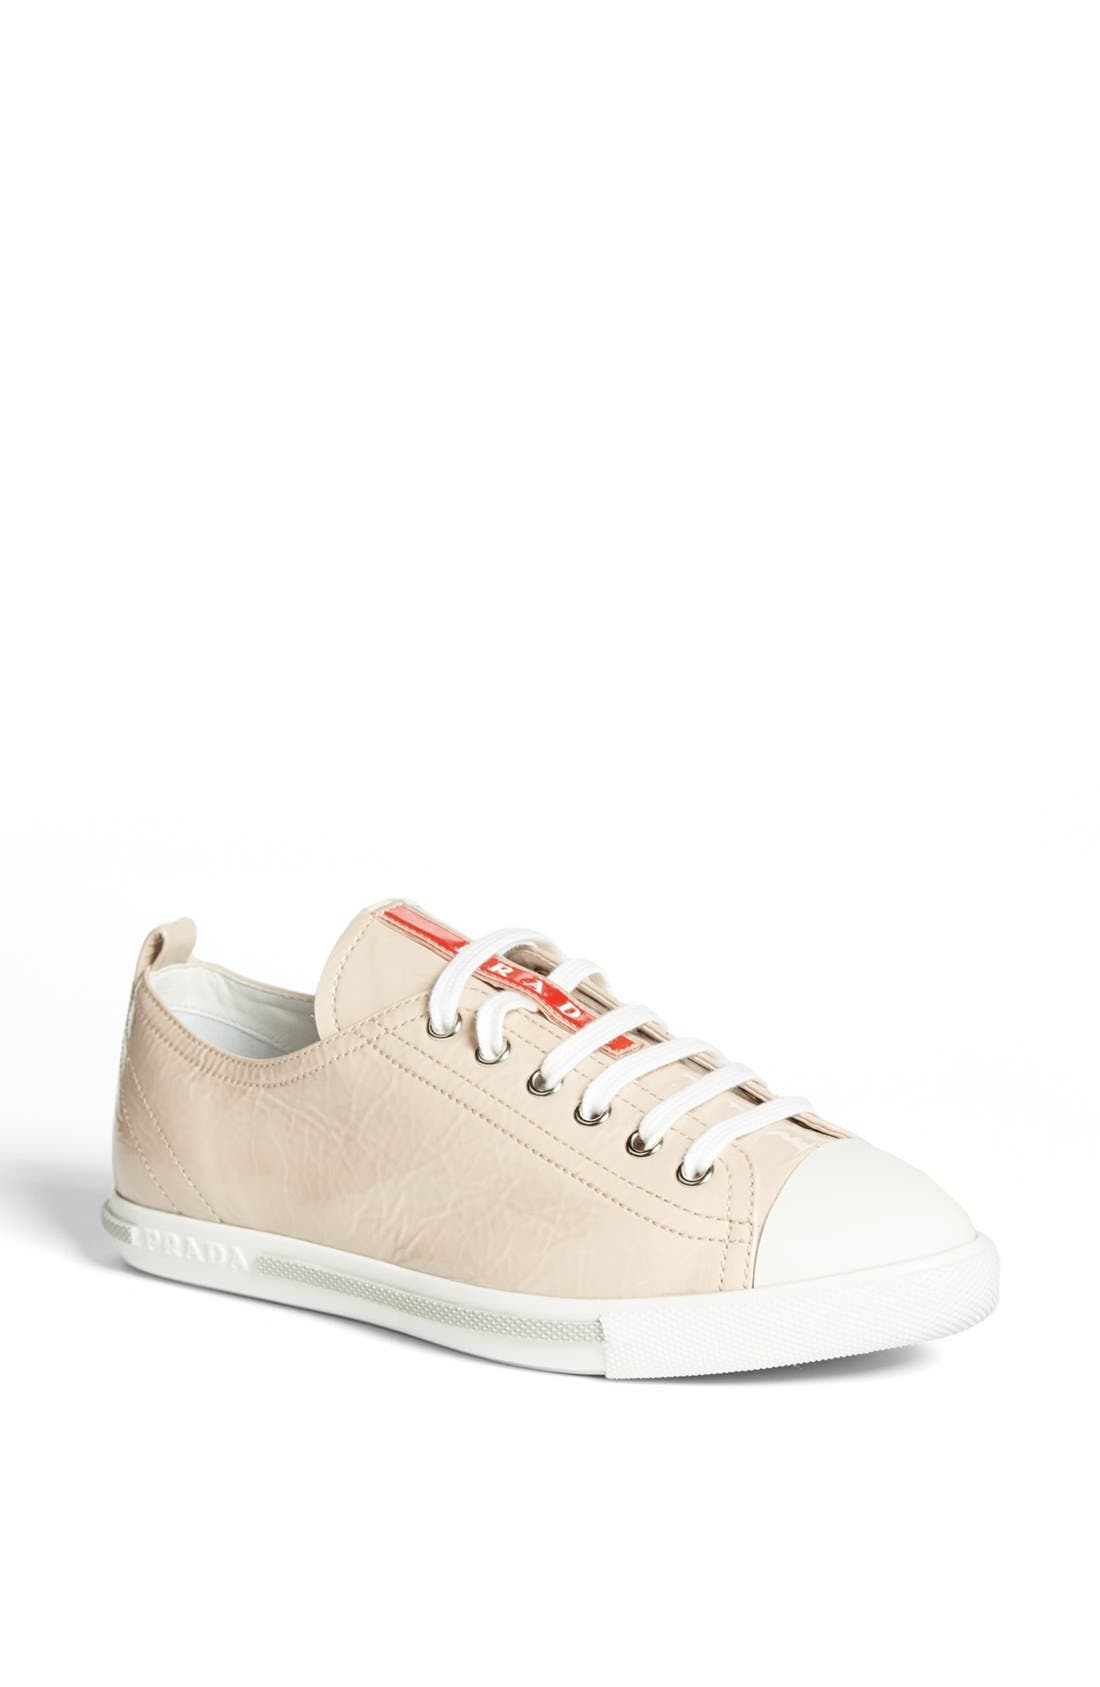 Main Image - Prada Low Top Cap Toe Sneaker